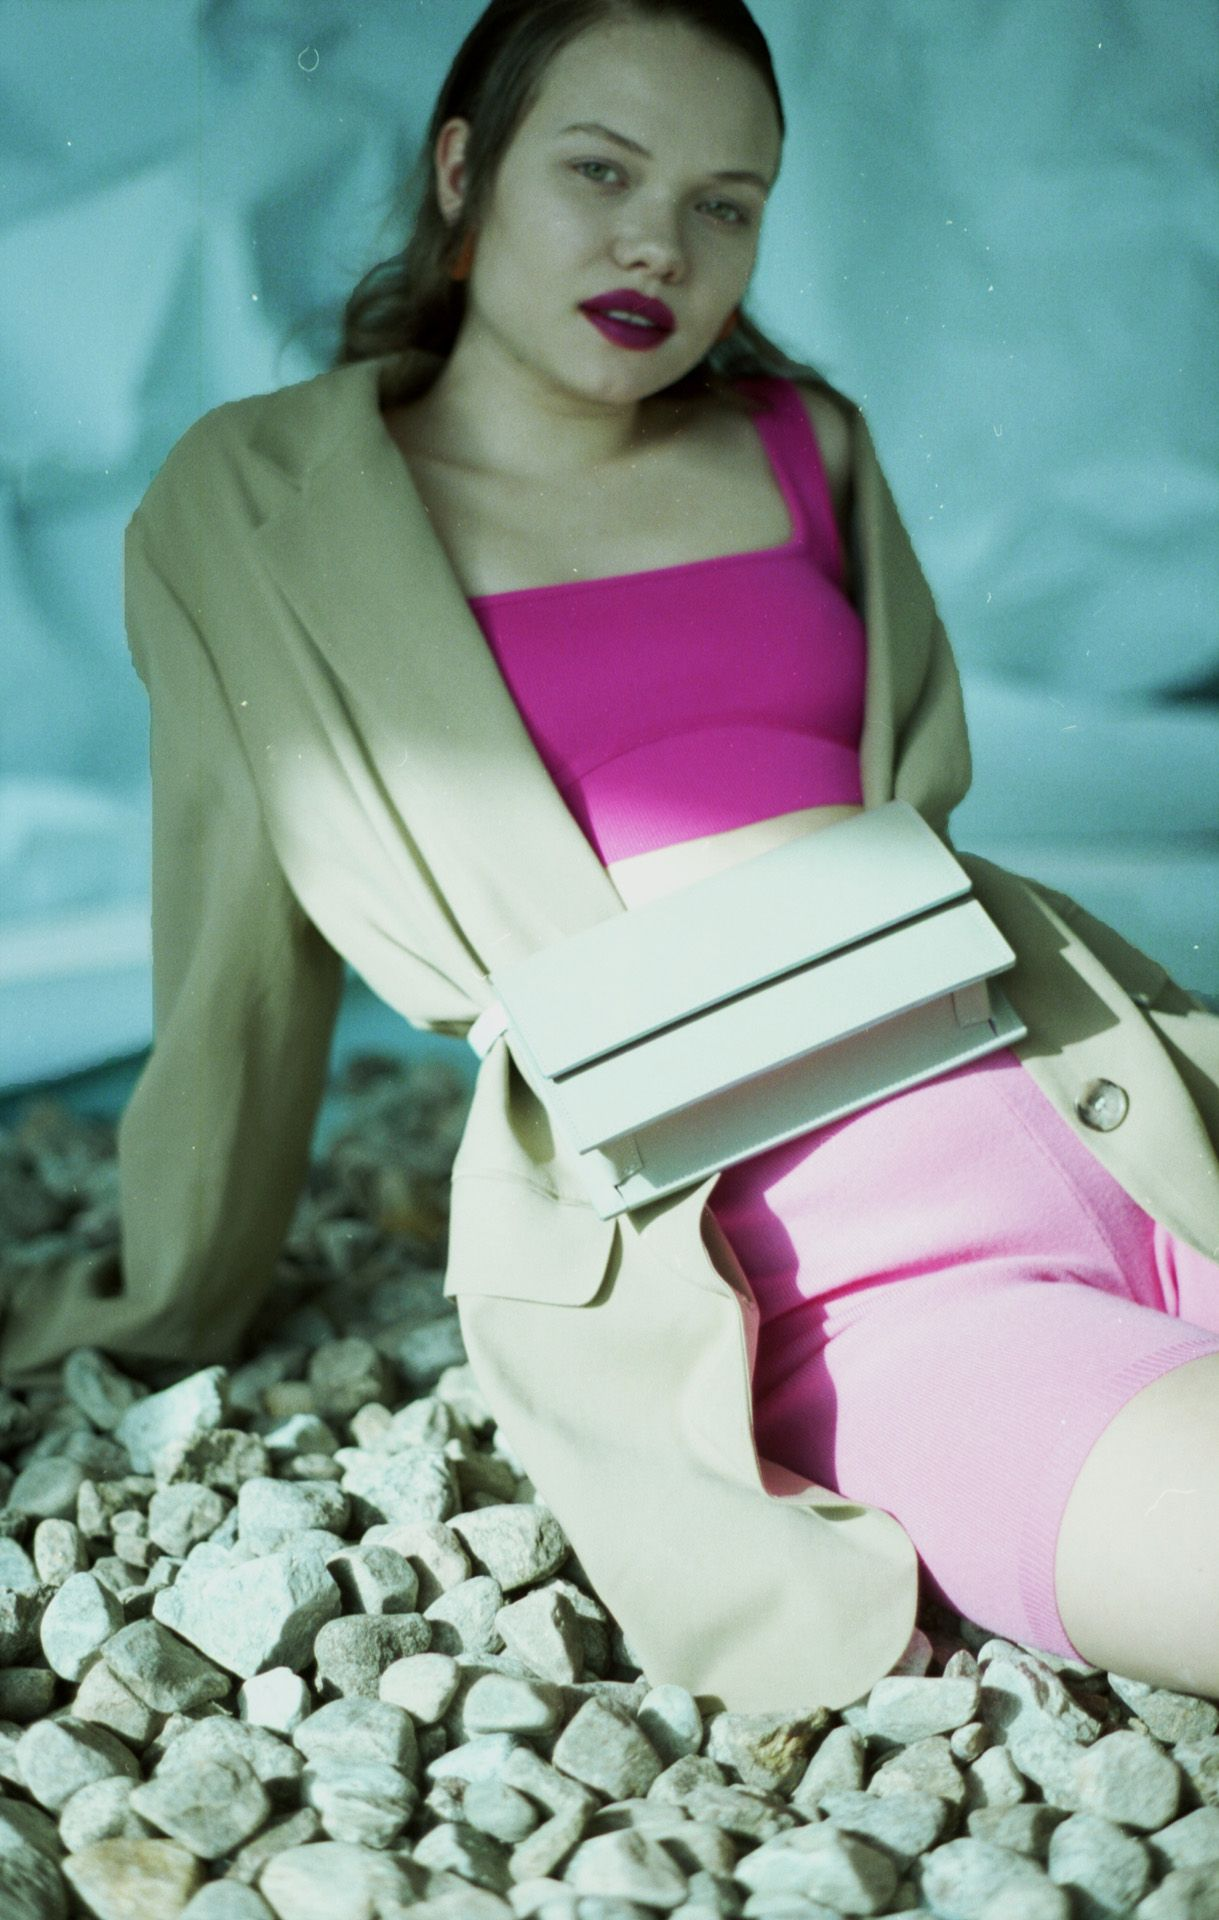 female model sitting on rocks wearing large beige coat with hot pink biker shorts and sports bra and light blue leather bag on light blue background for bouquet Montreal-brand Spring-Summer 2020 campaign with styling and artistic direction by Studio TB